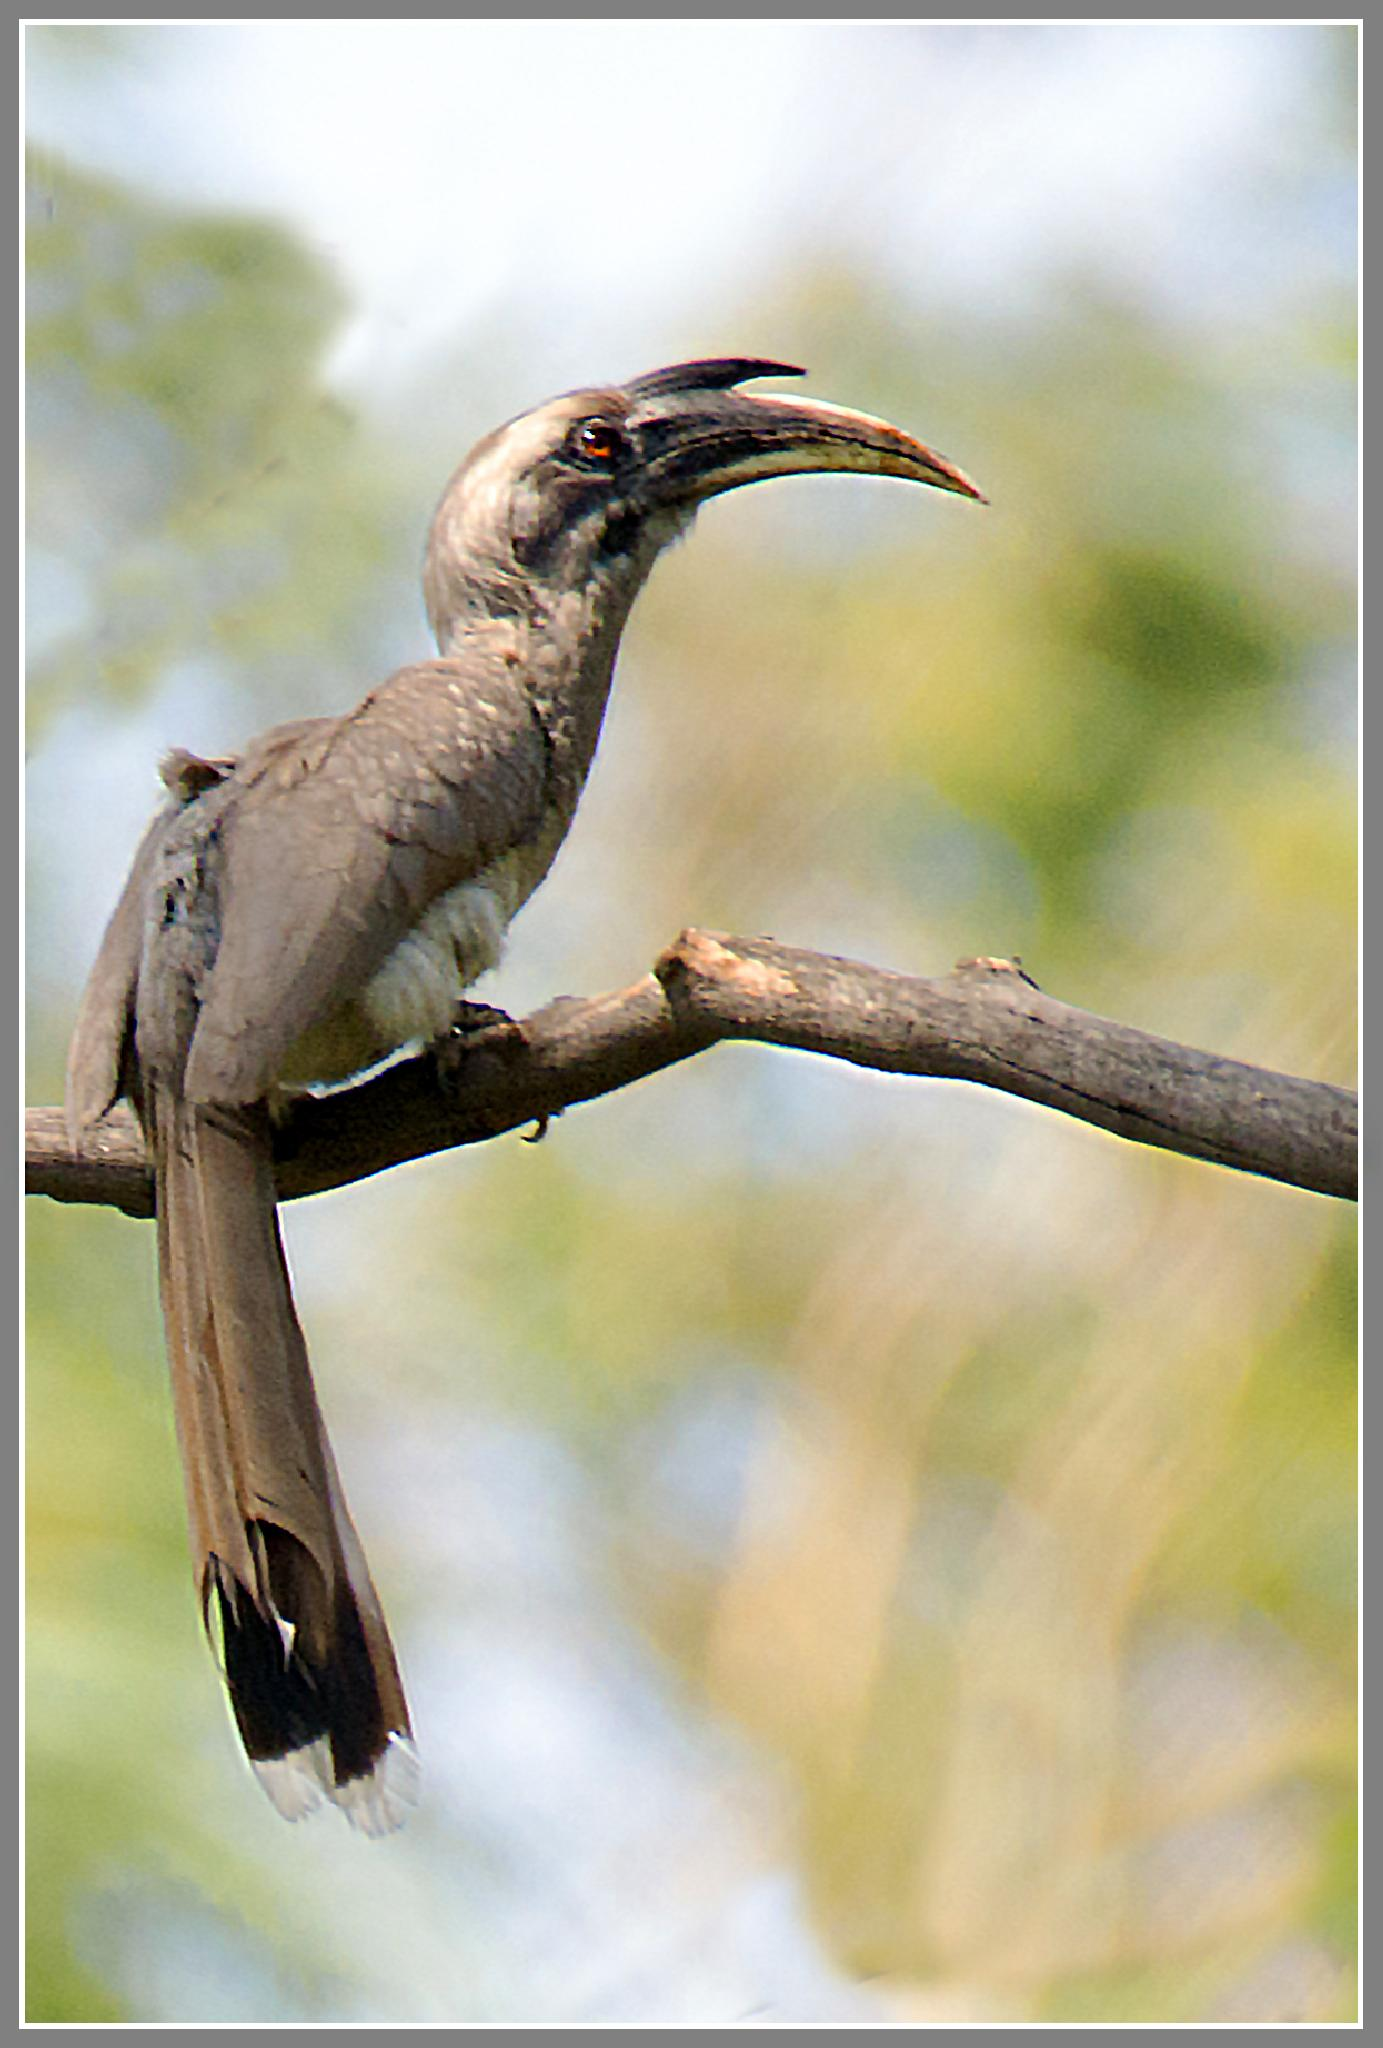 Indian Grey Hornbill by Sanjeev Ski